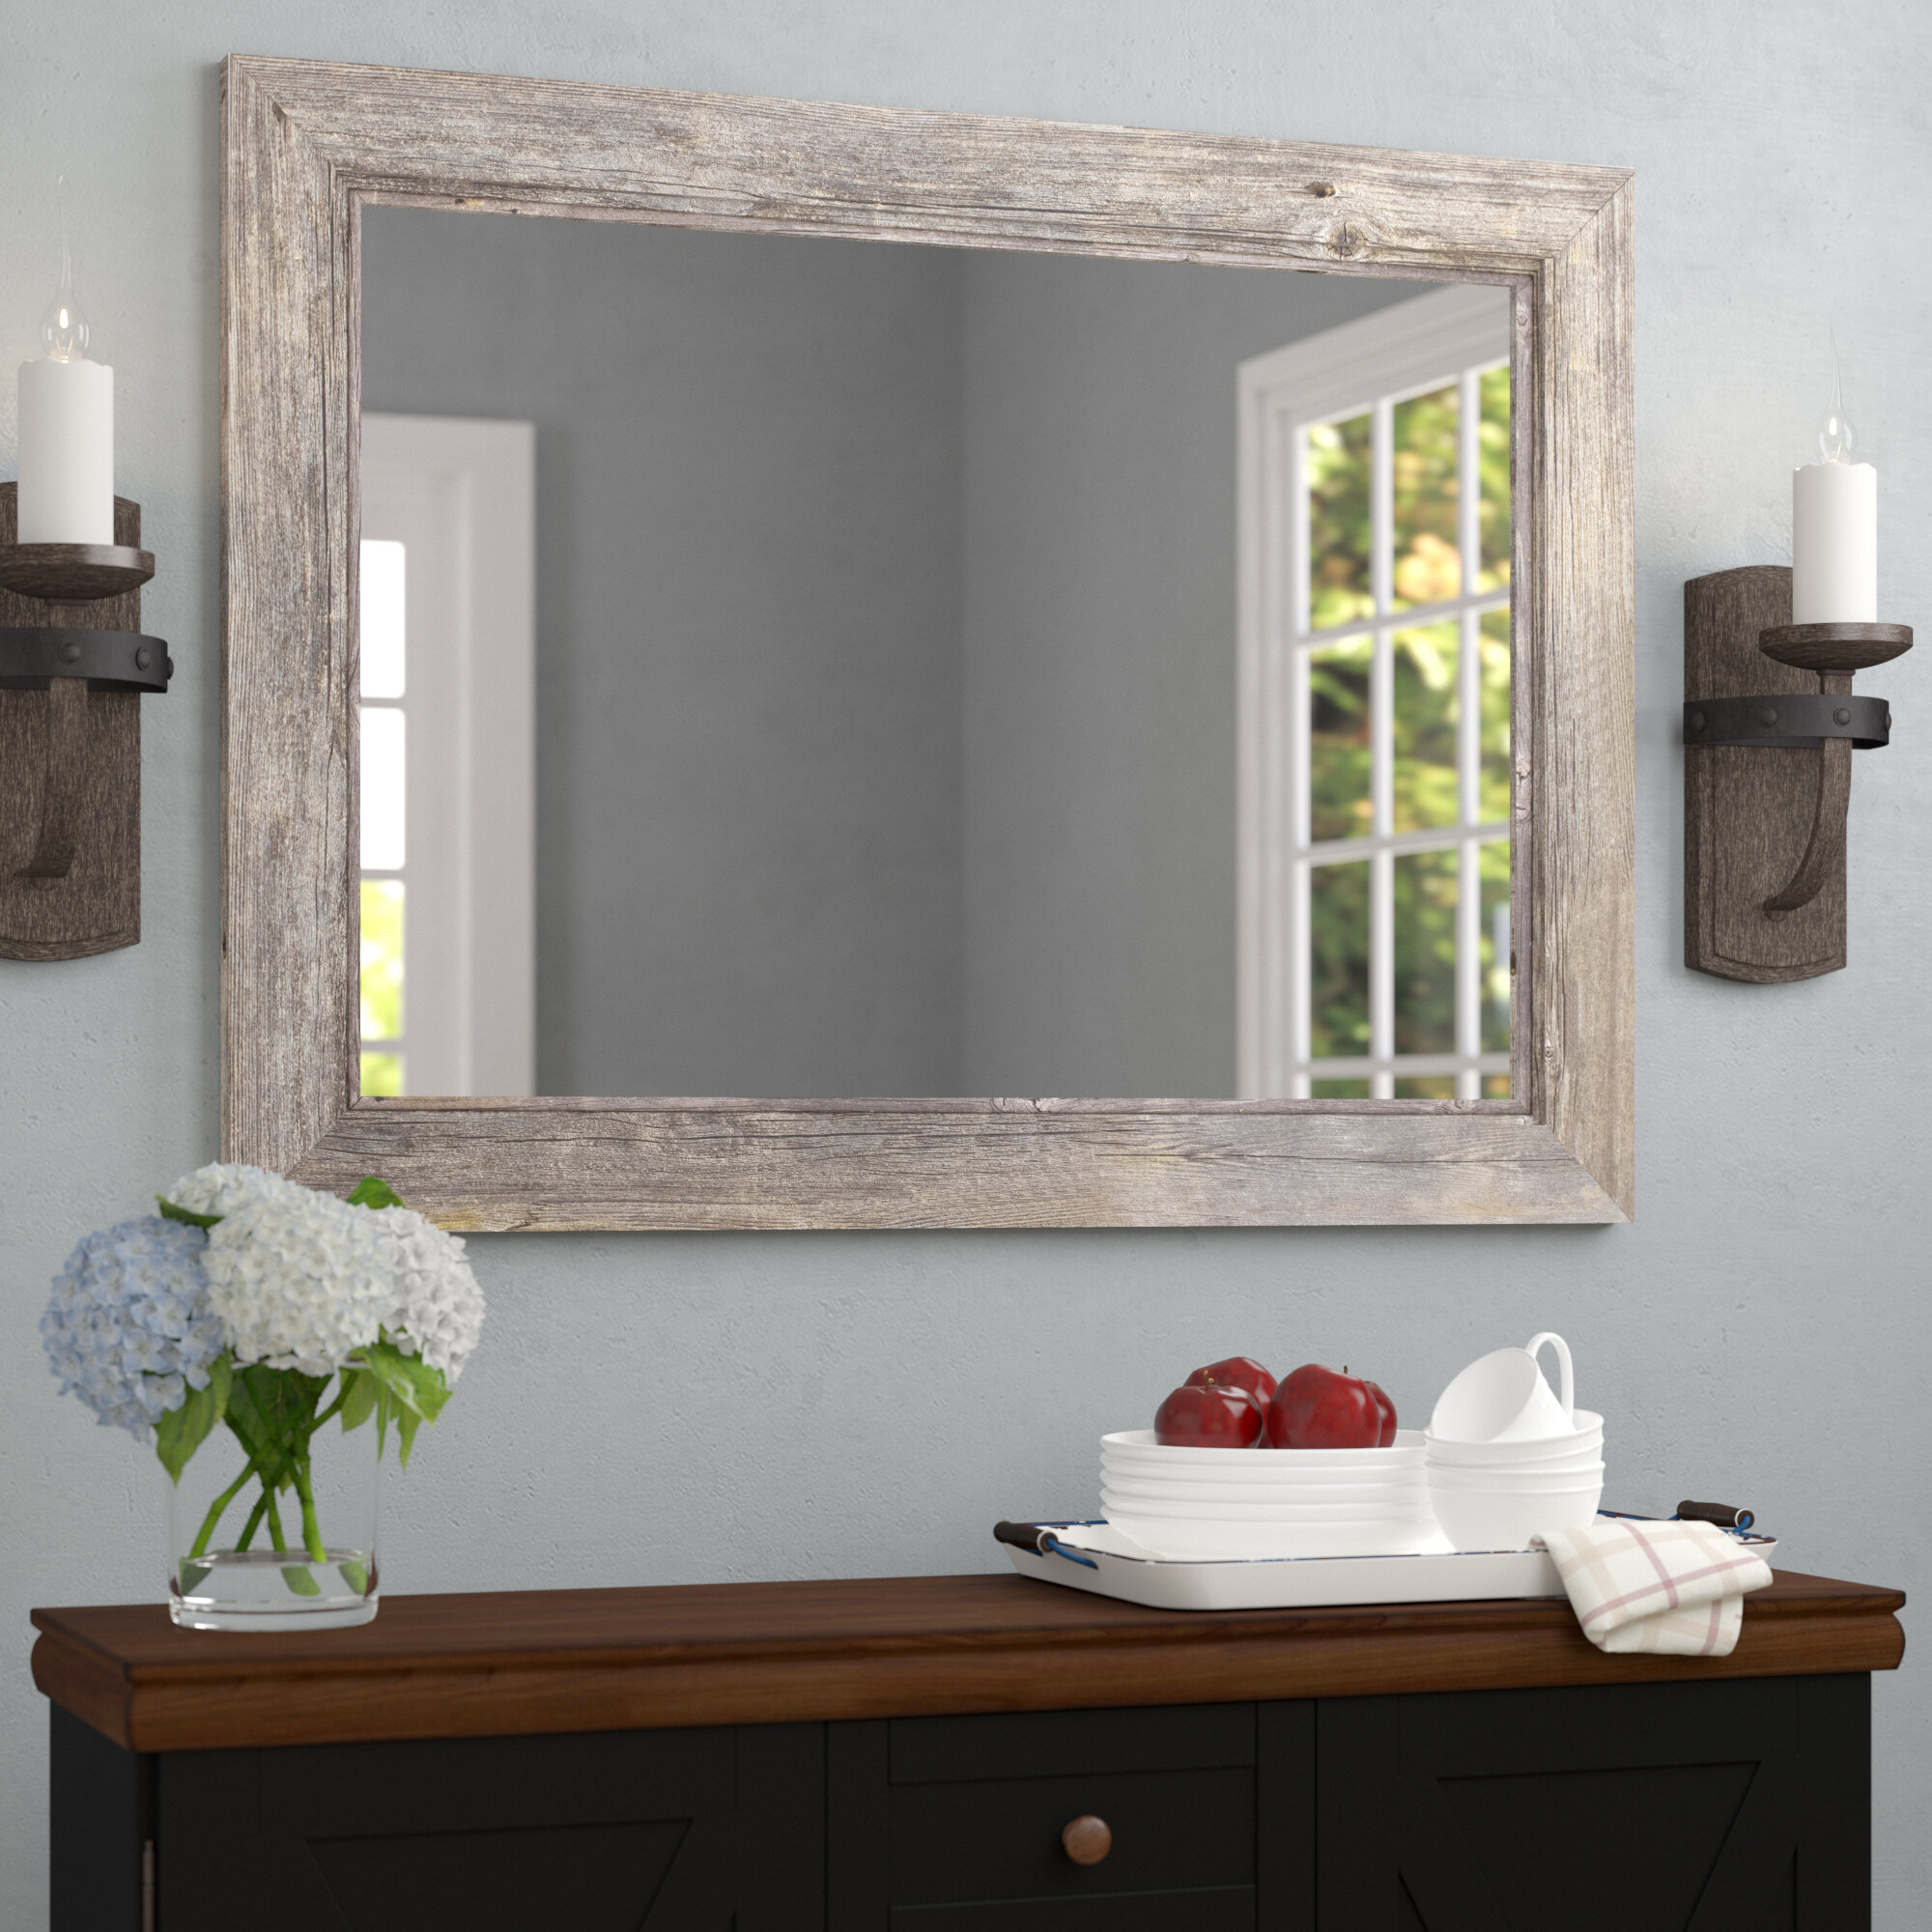 august grove coastal bathroom mirror reviews wayfair - Coastal Bathroom